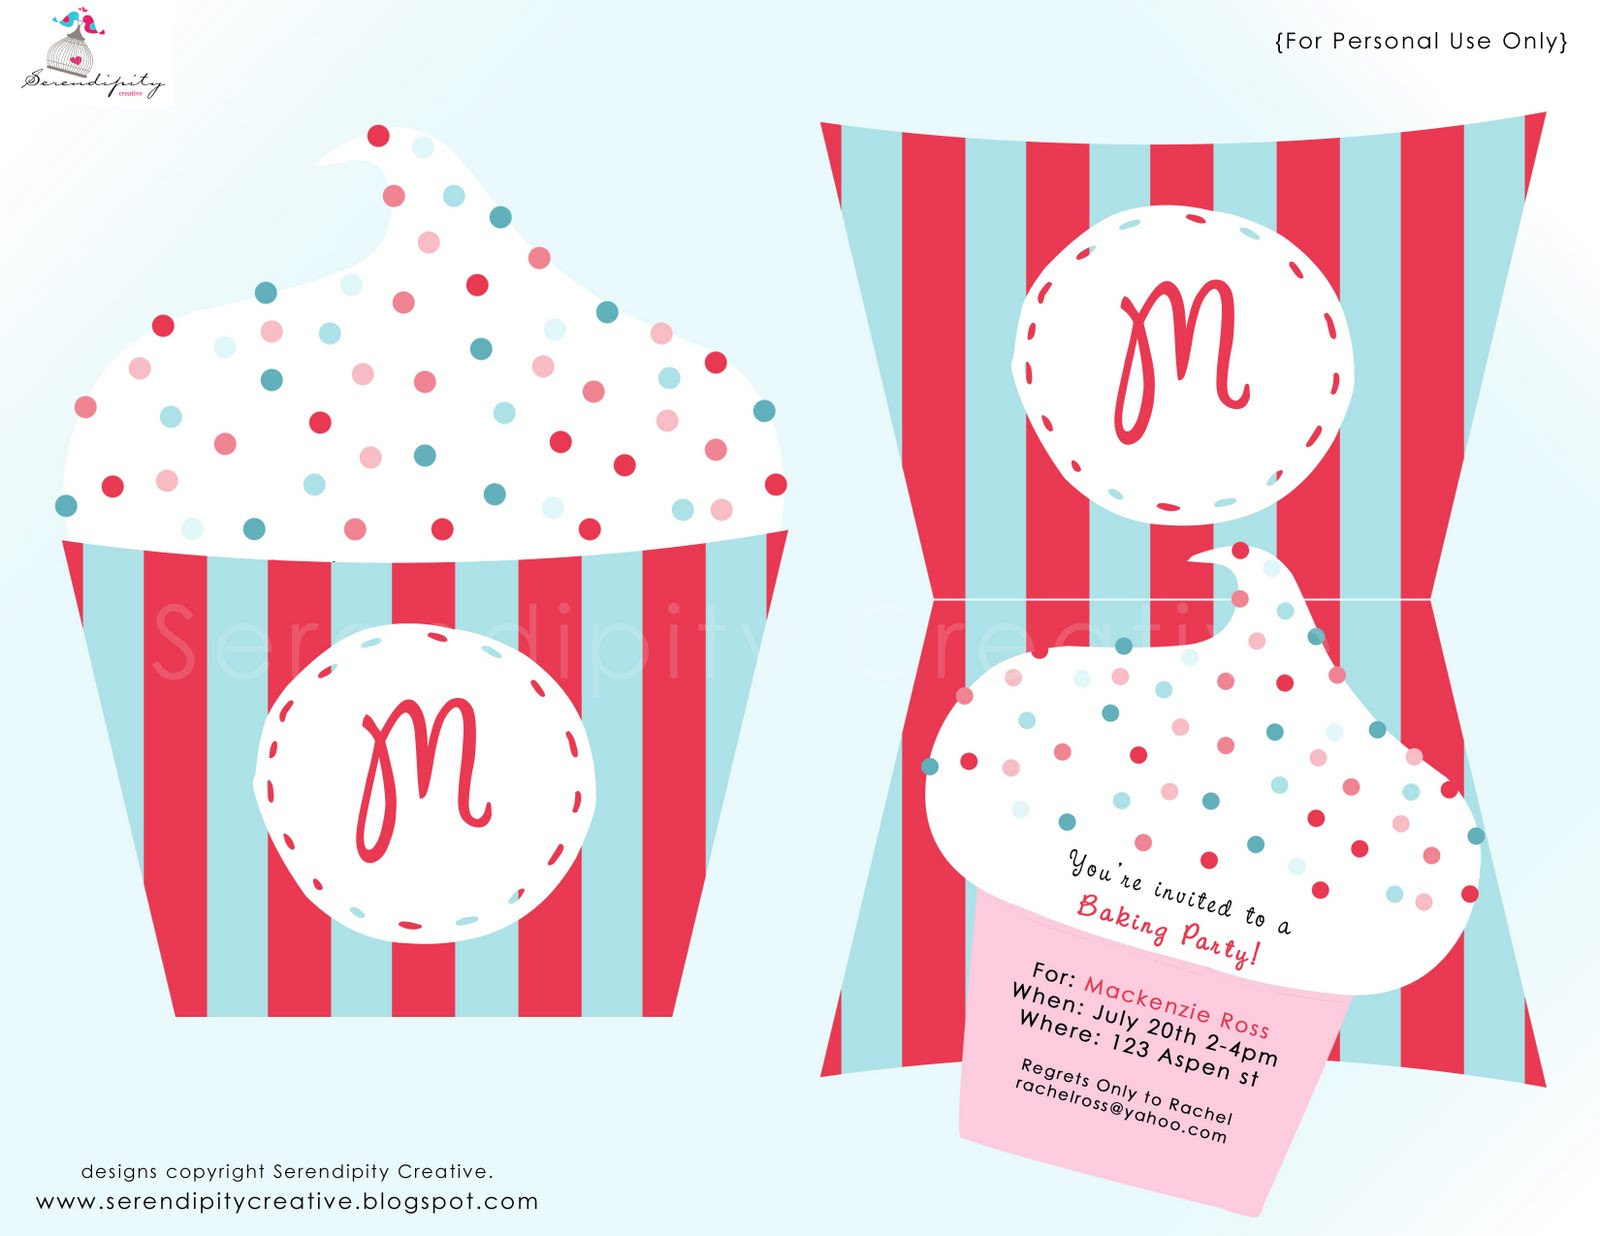 Baking Party Invitations is perfect invitation layout